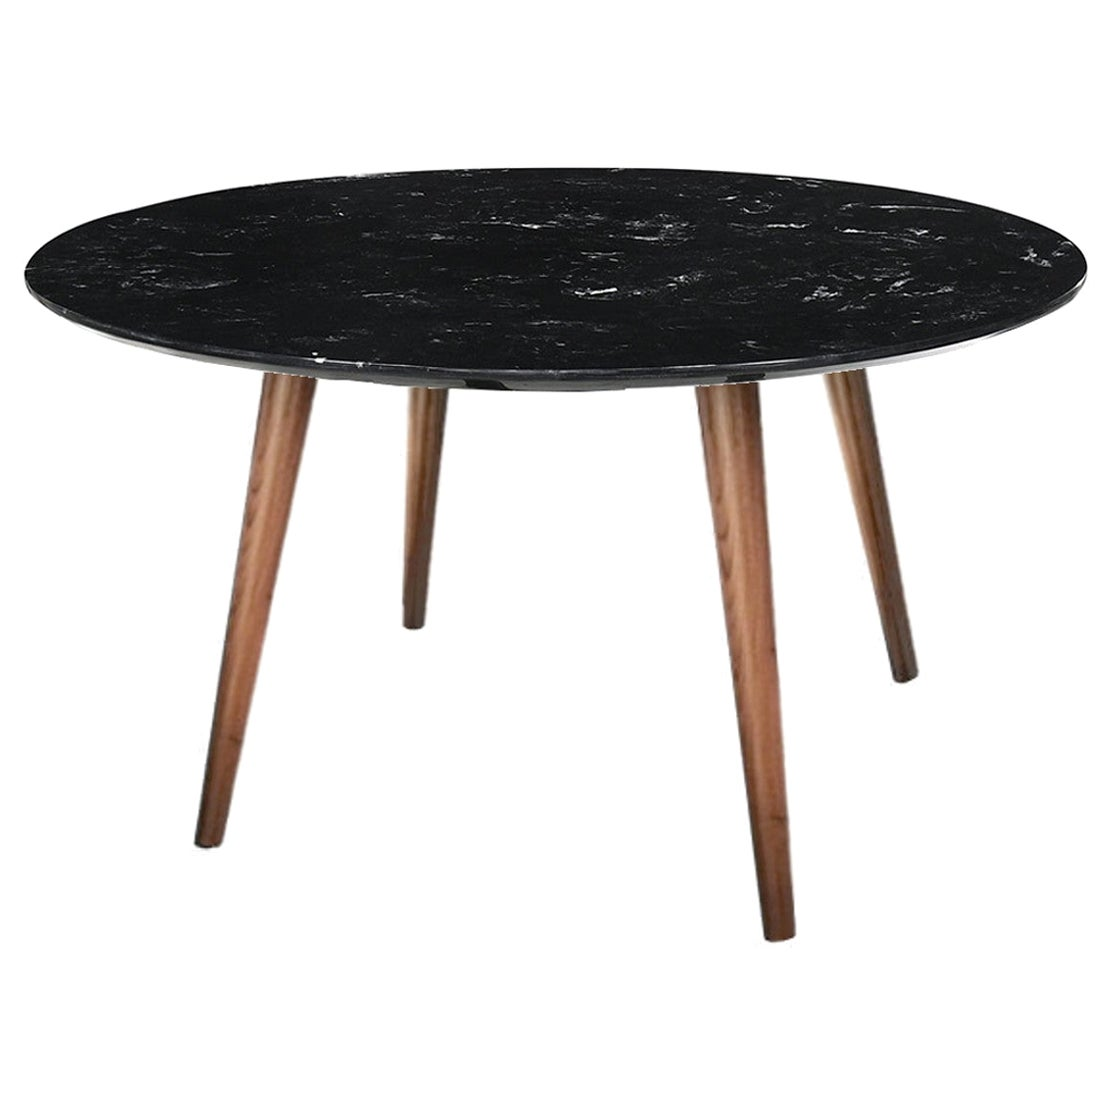 Modern Black Marble Dining Table with Walnut Base